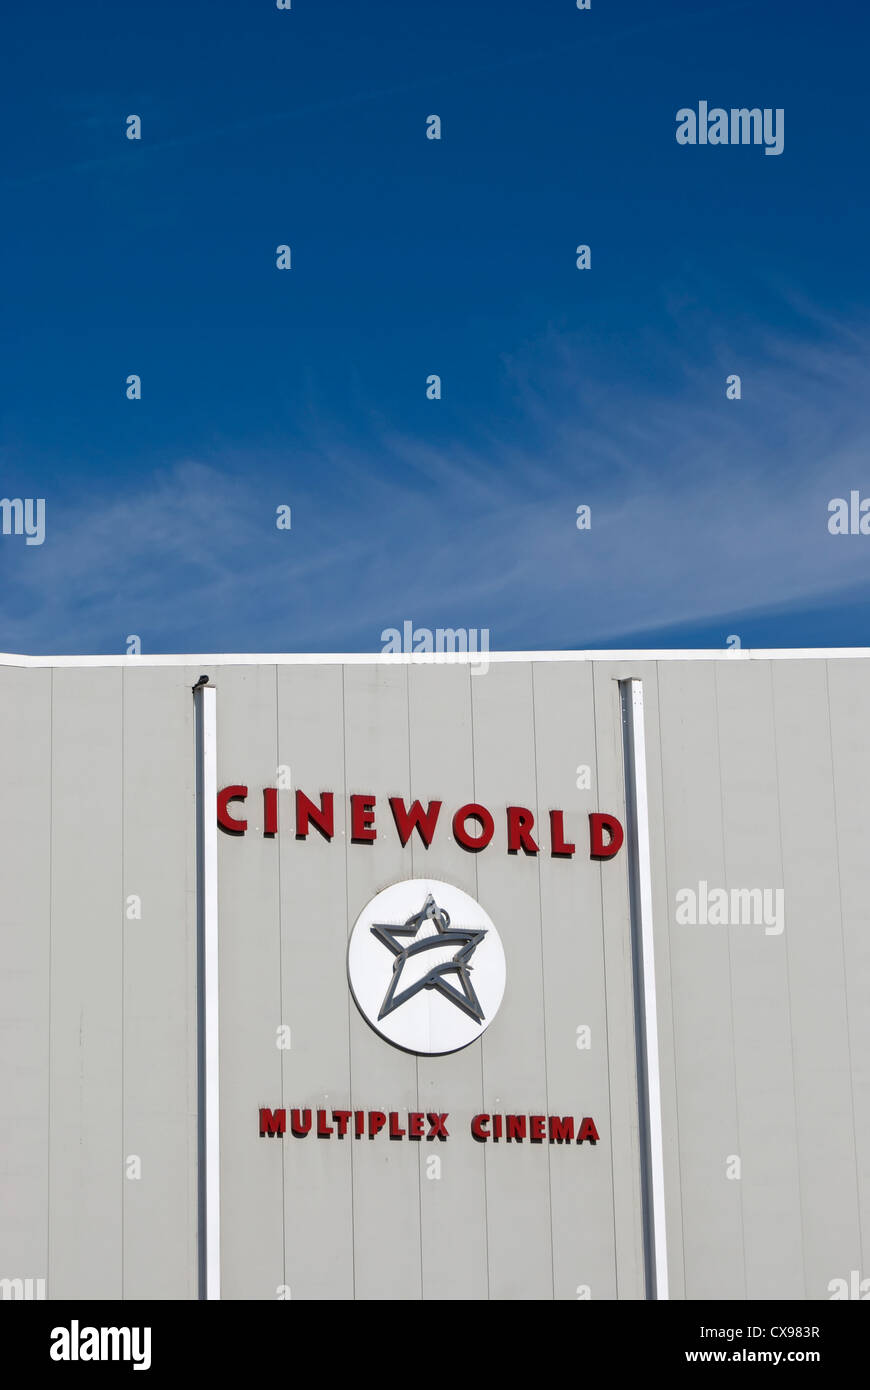 exterior detail with name and logo of cineworld multiplex cinema, feltham, middlesex, england - Stock Image